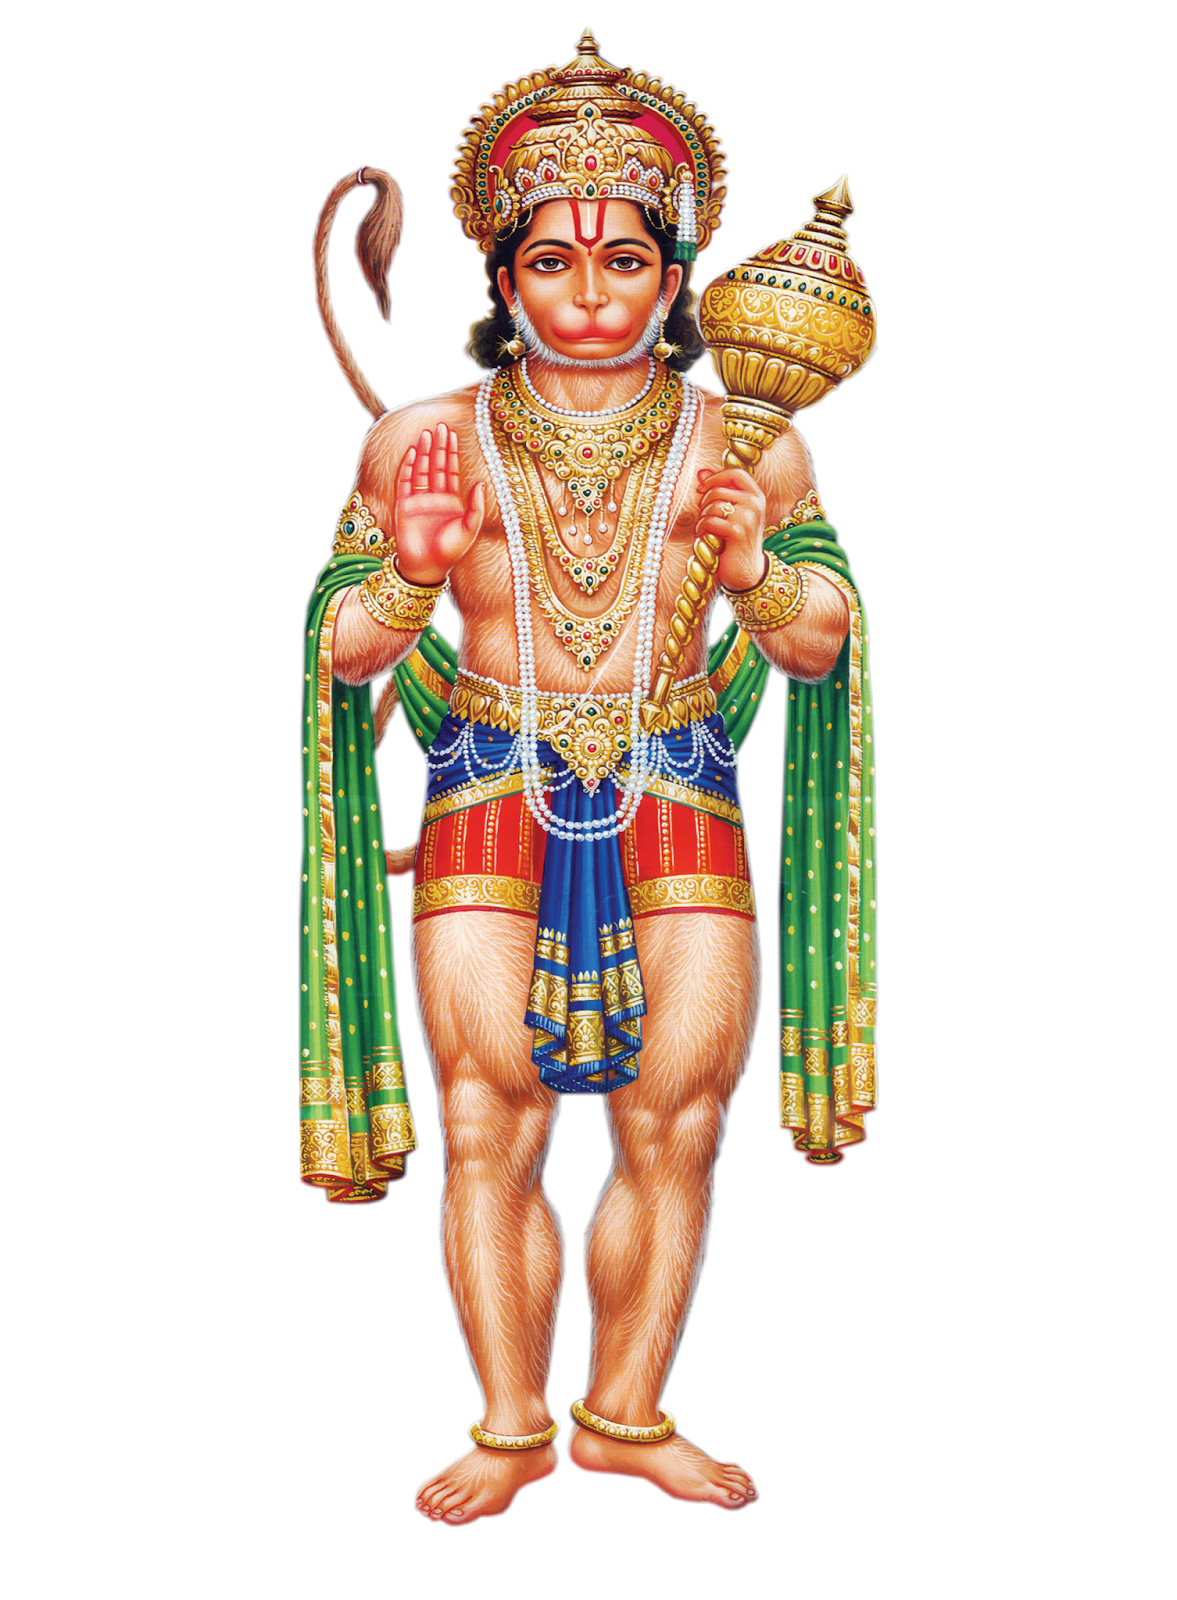 PNG File Name: Hanuman Transparent PNG - Hanuman PNG